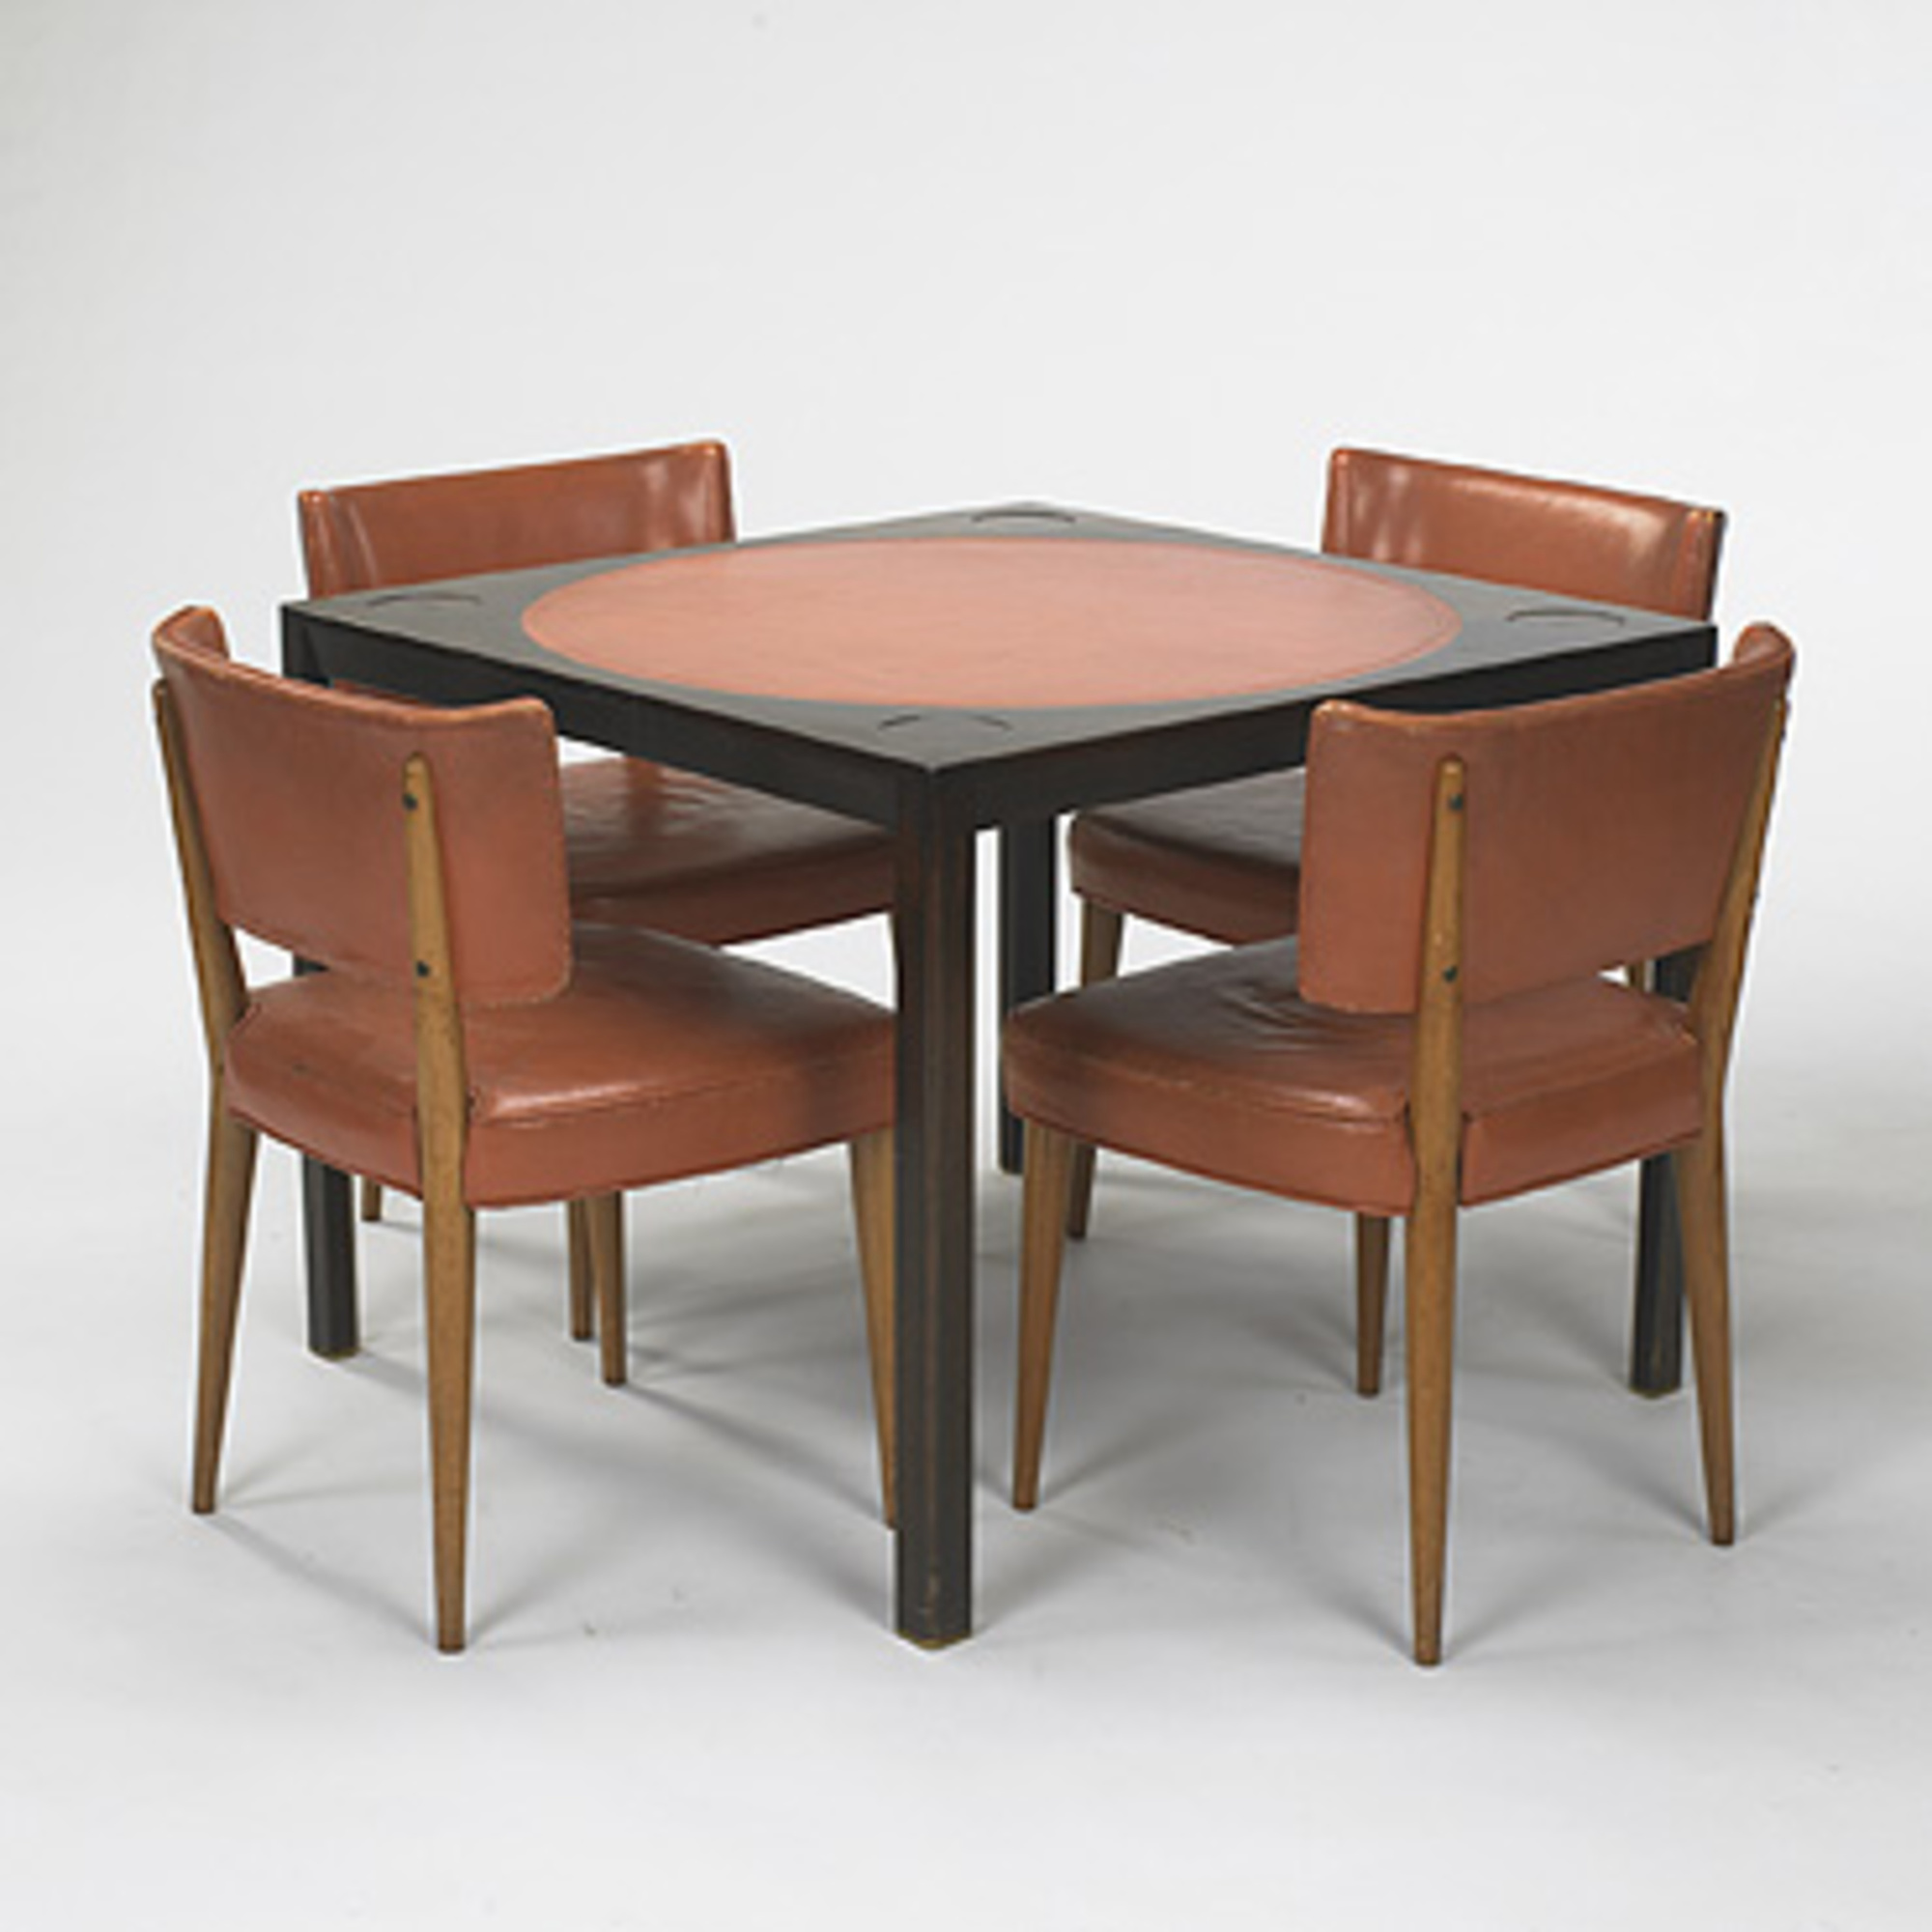 5: EDWARD WORMLEY, card table and set of four chairs < Mass